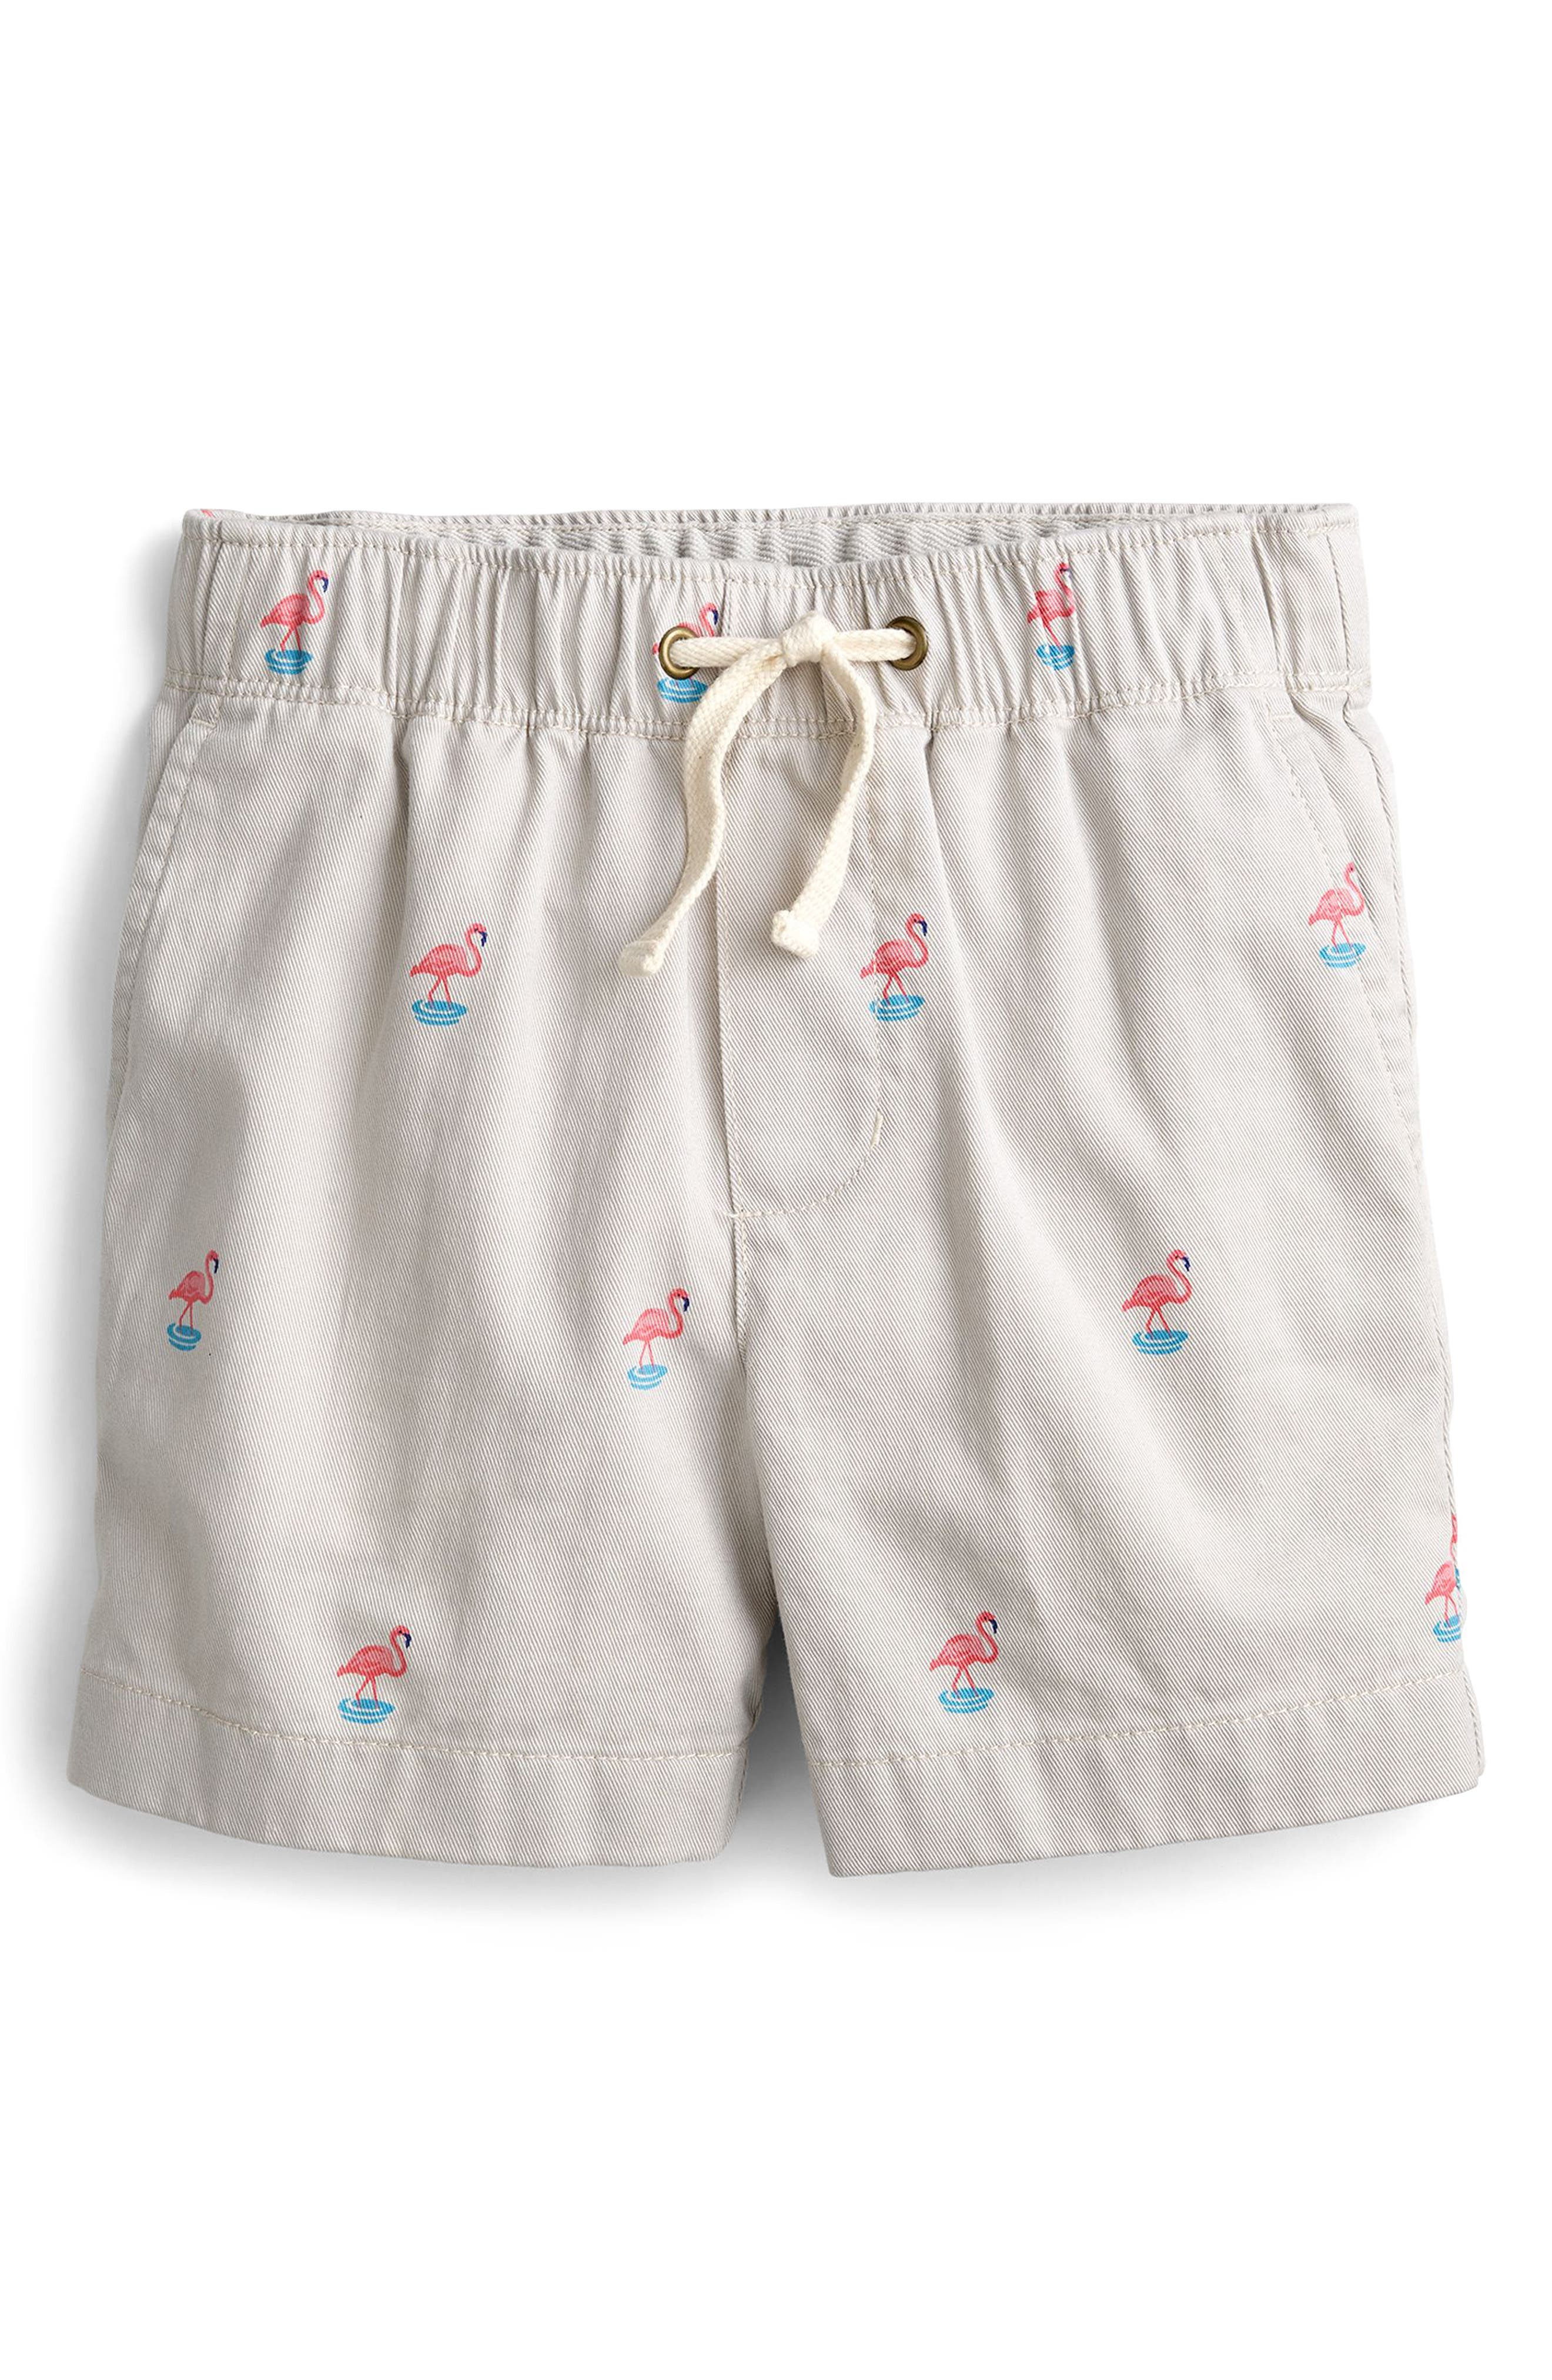 Dock Short in Critter Flamingo,                         Main,                         color, Oyster Grey